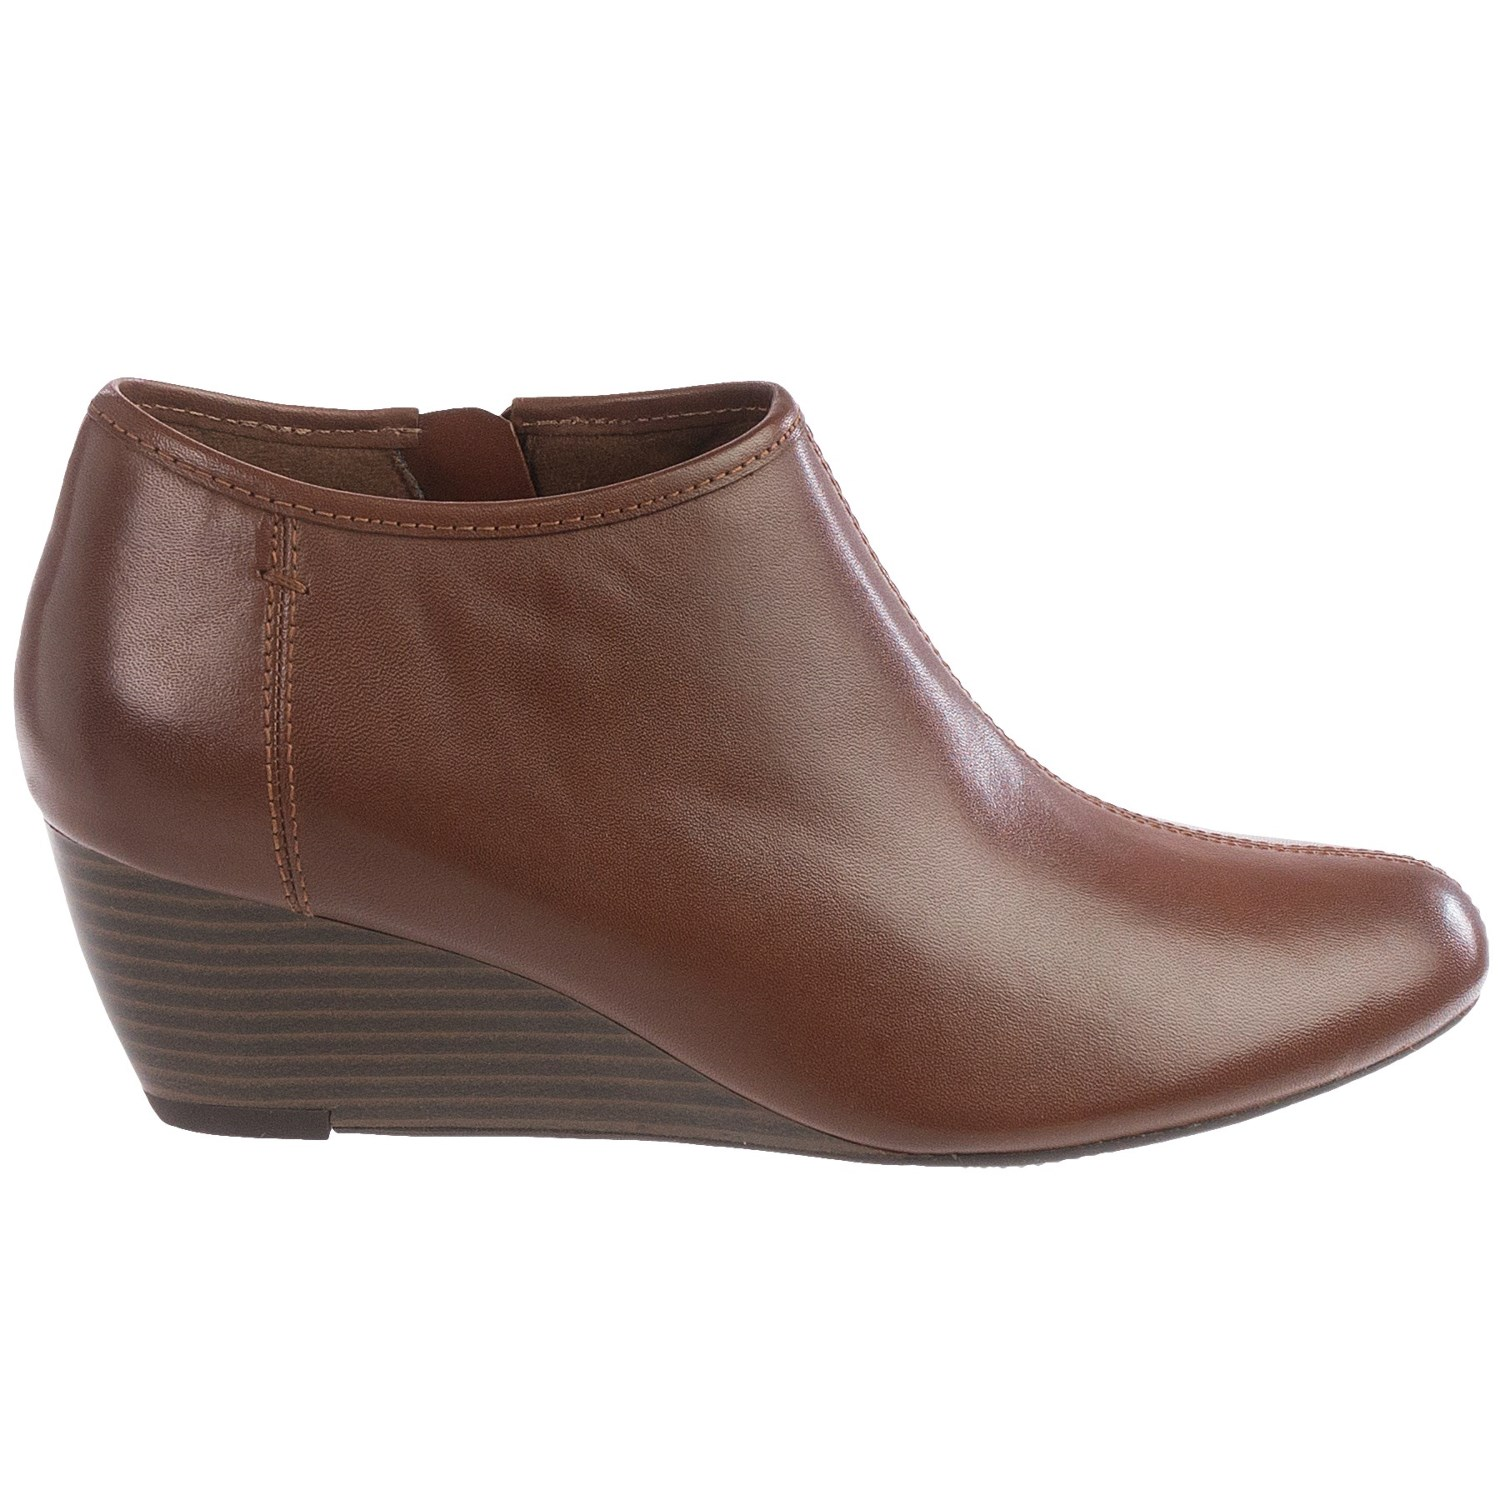 clarks brielle abby ankle boots for save 60